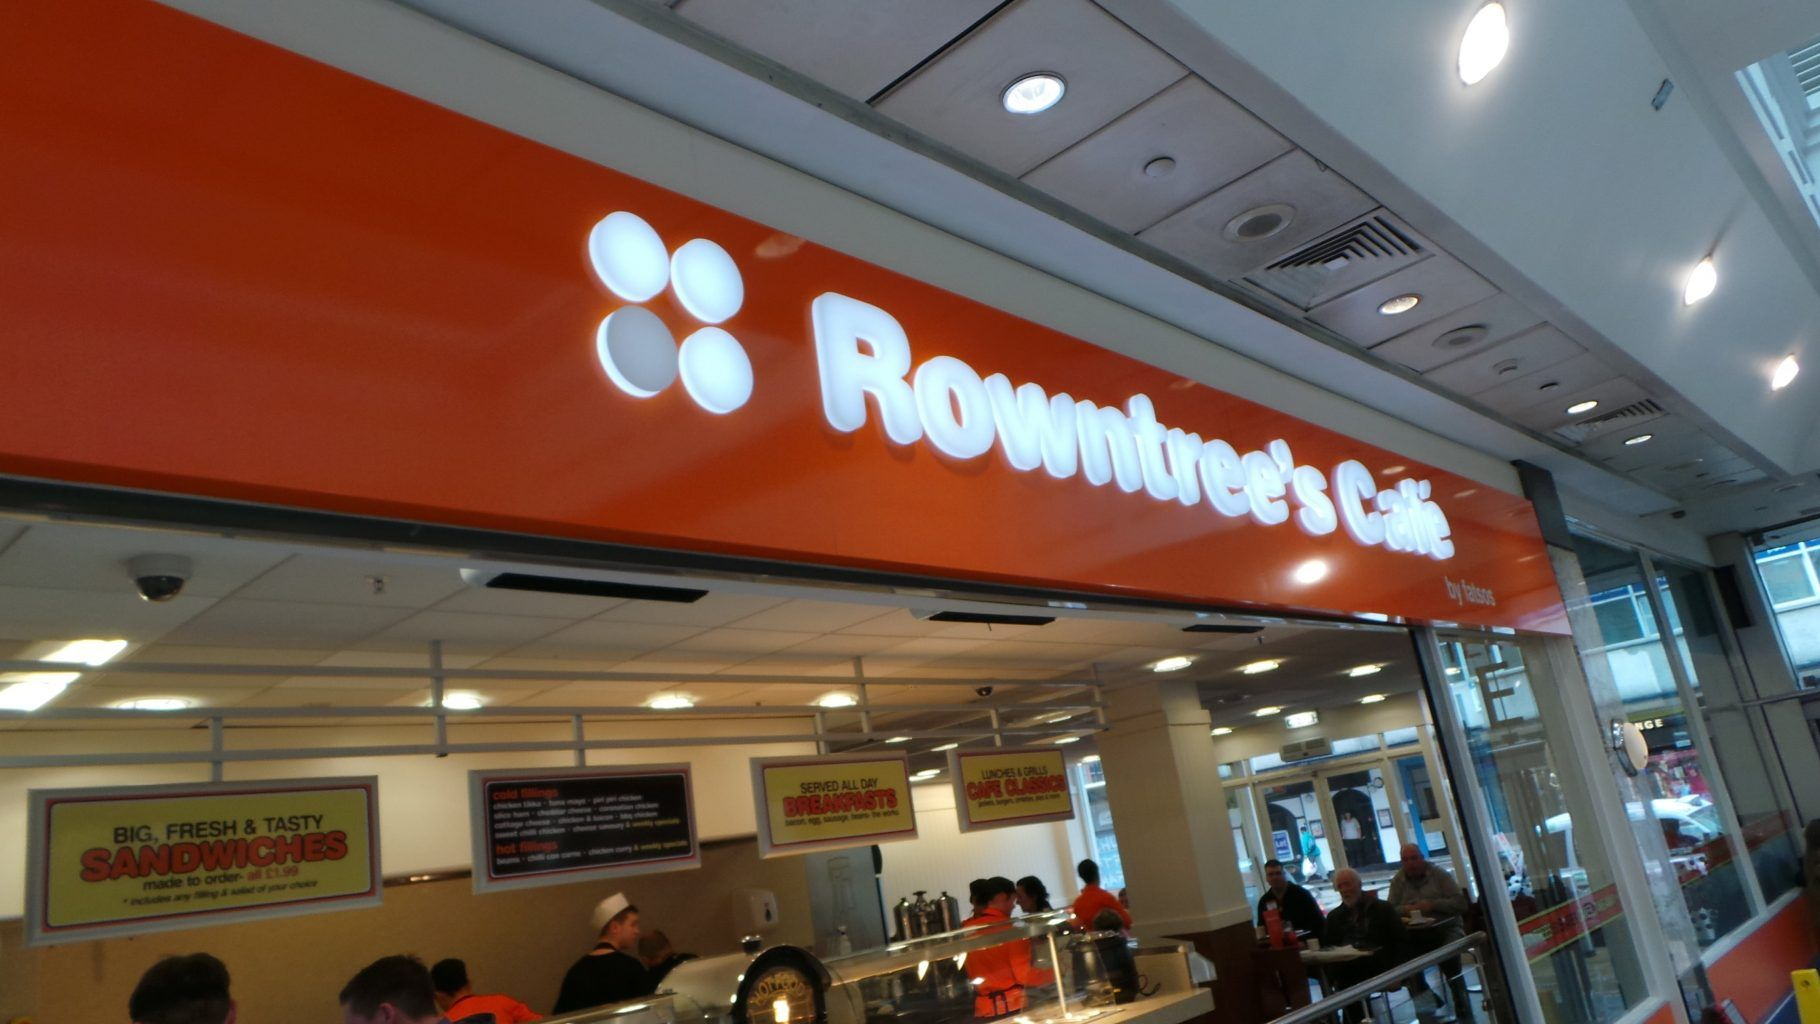 Rowntrees Fascia Sign With Acrylic Letters (2)